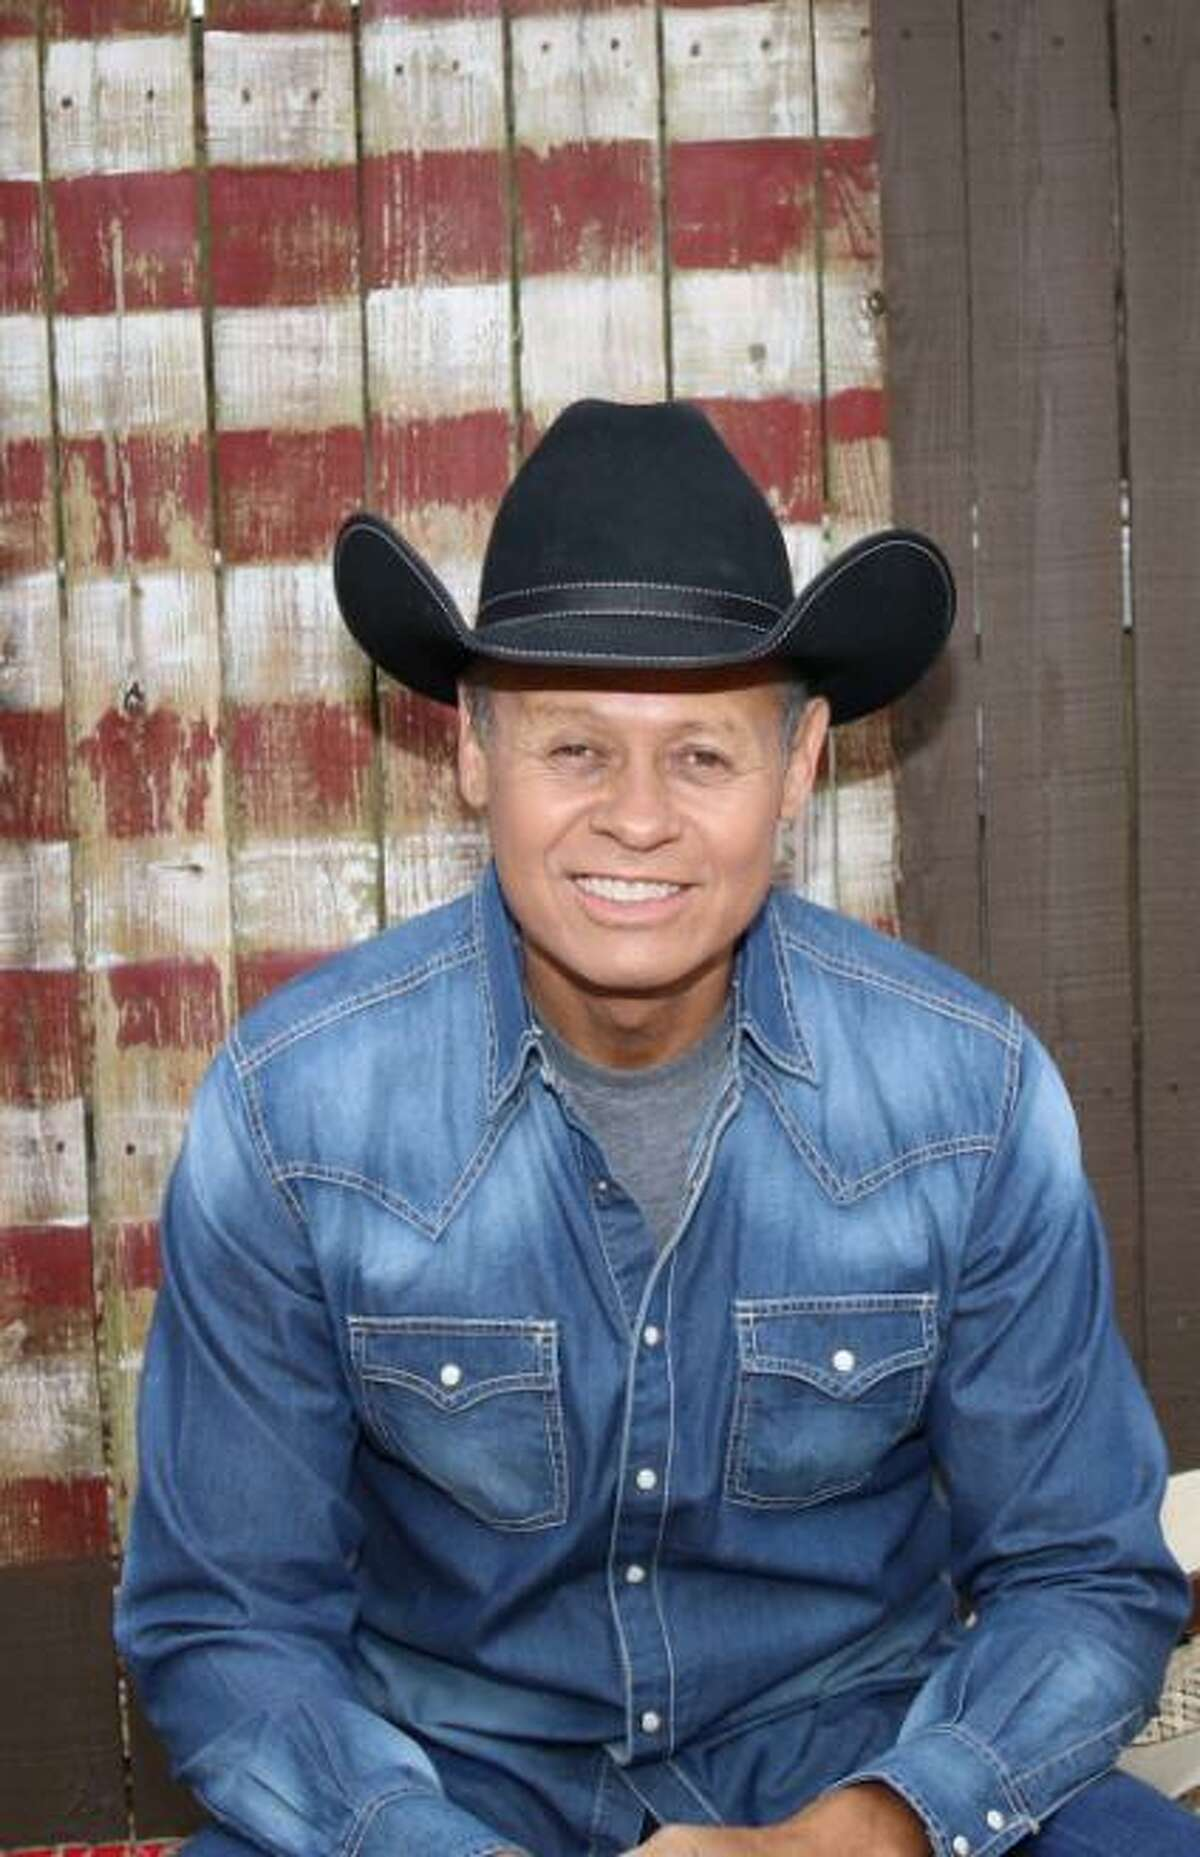 Neal McCoy will headline entertainment at the Fort Bend County Fair on Friday, Oct. 4.